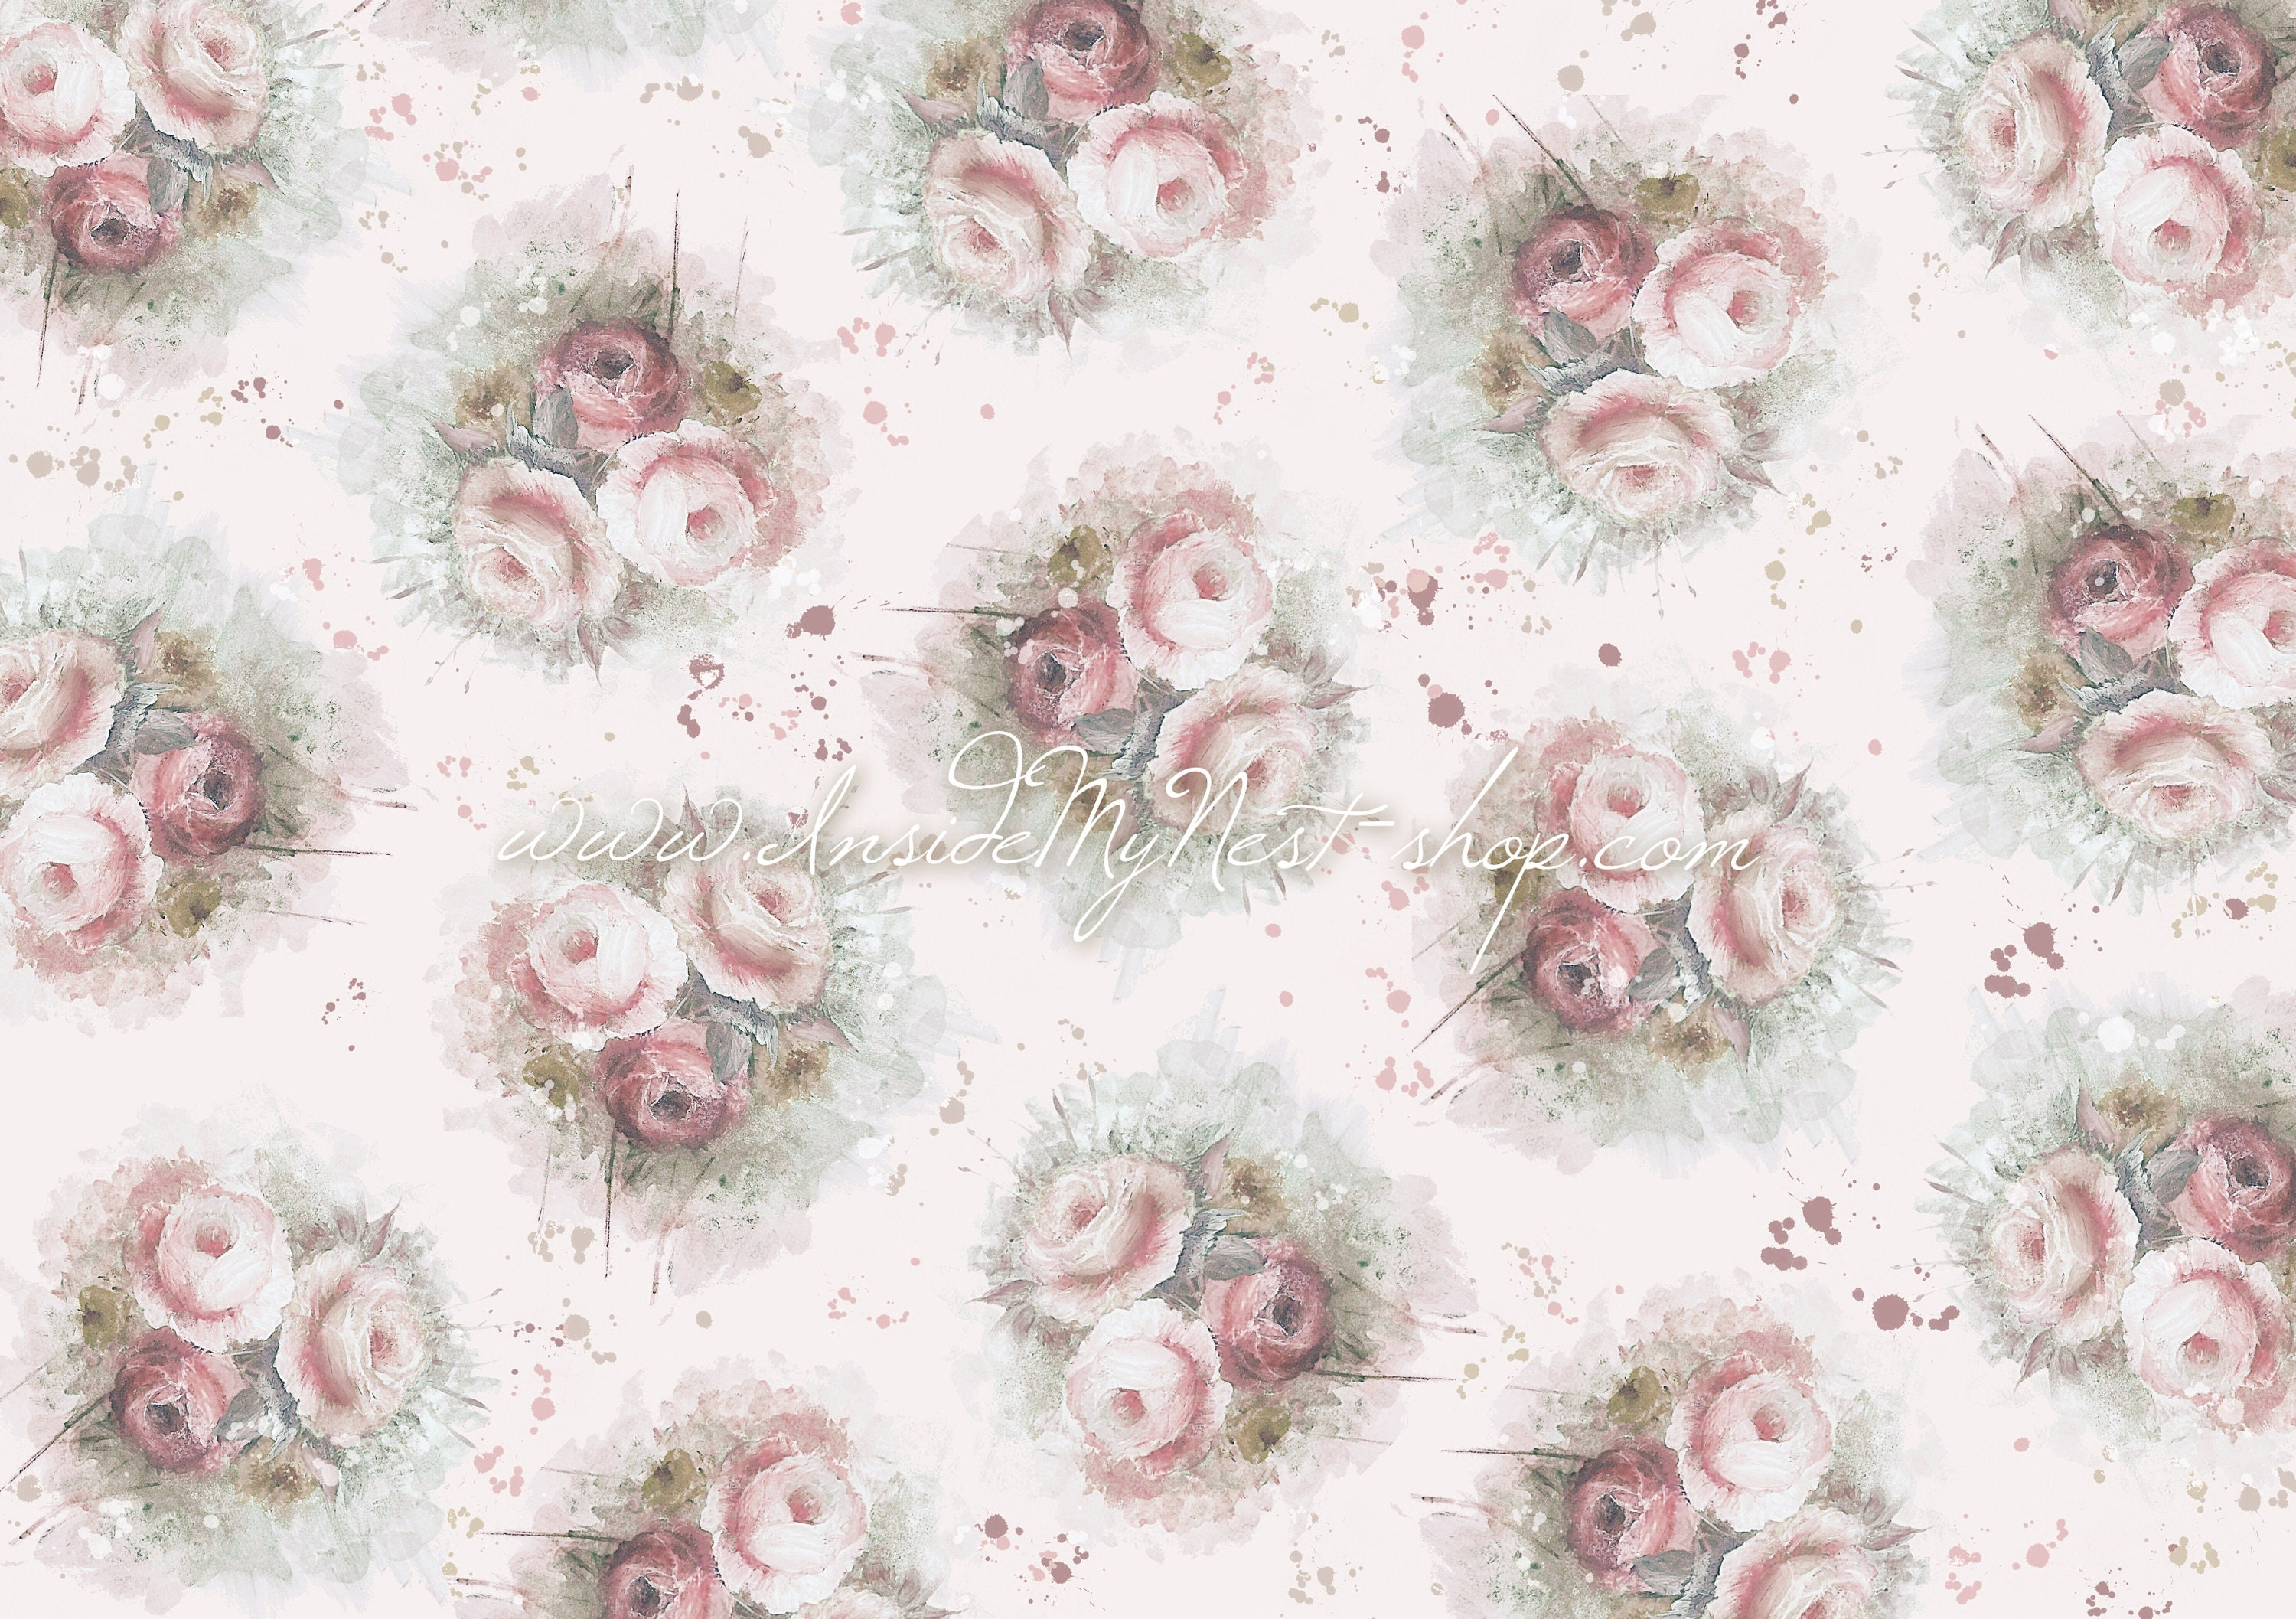 Digital Dusty Rose Blush Pink Vintage Shabby Cottage Chic Floral